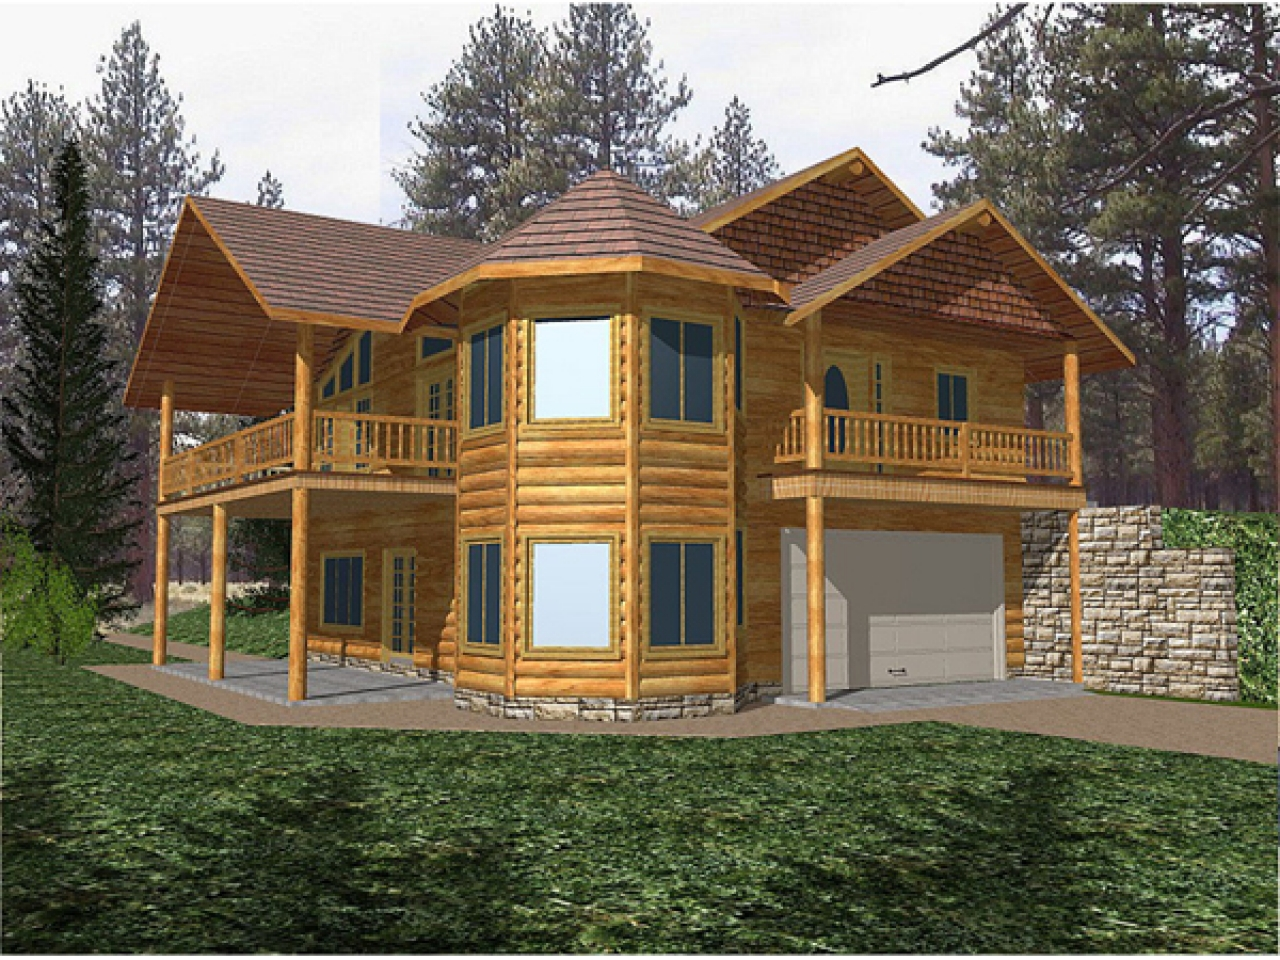 1866 two story log cabin 2 story log home plans two for Small 2 story cottage plans